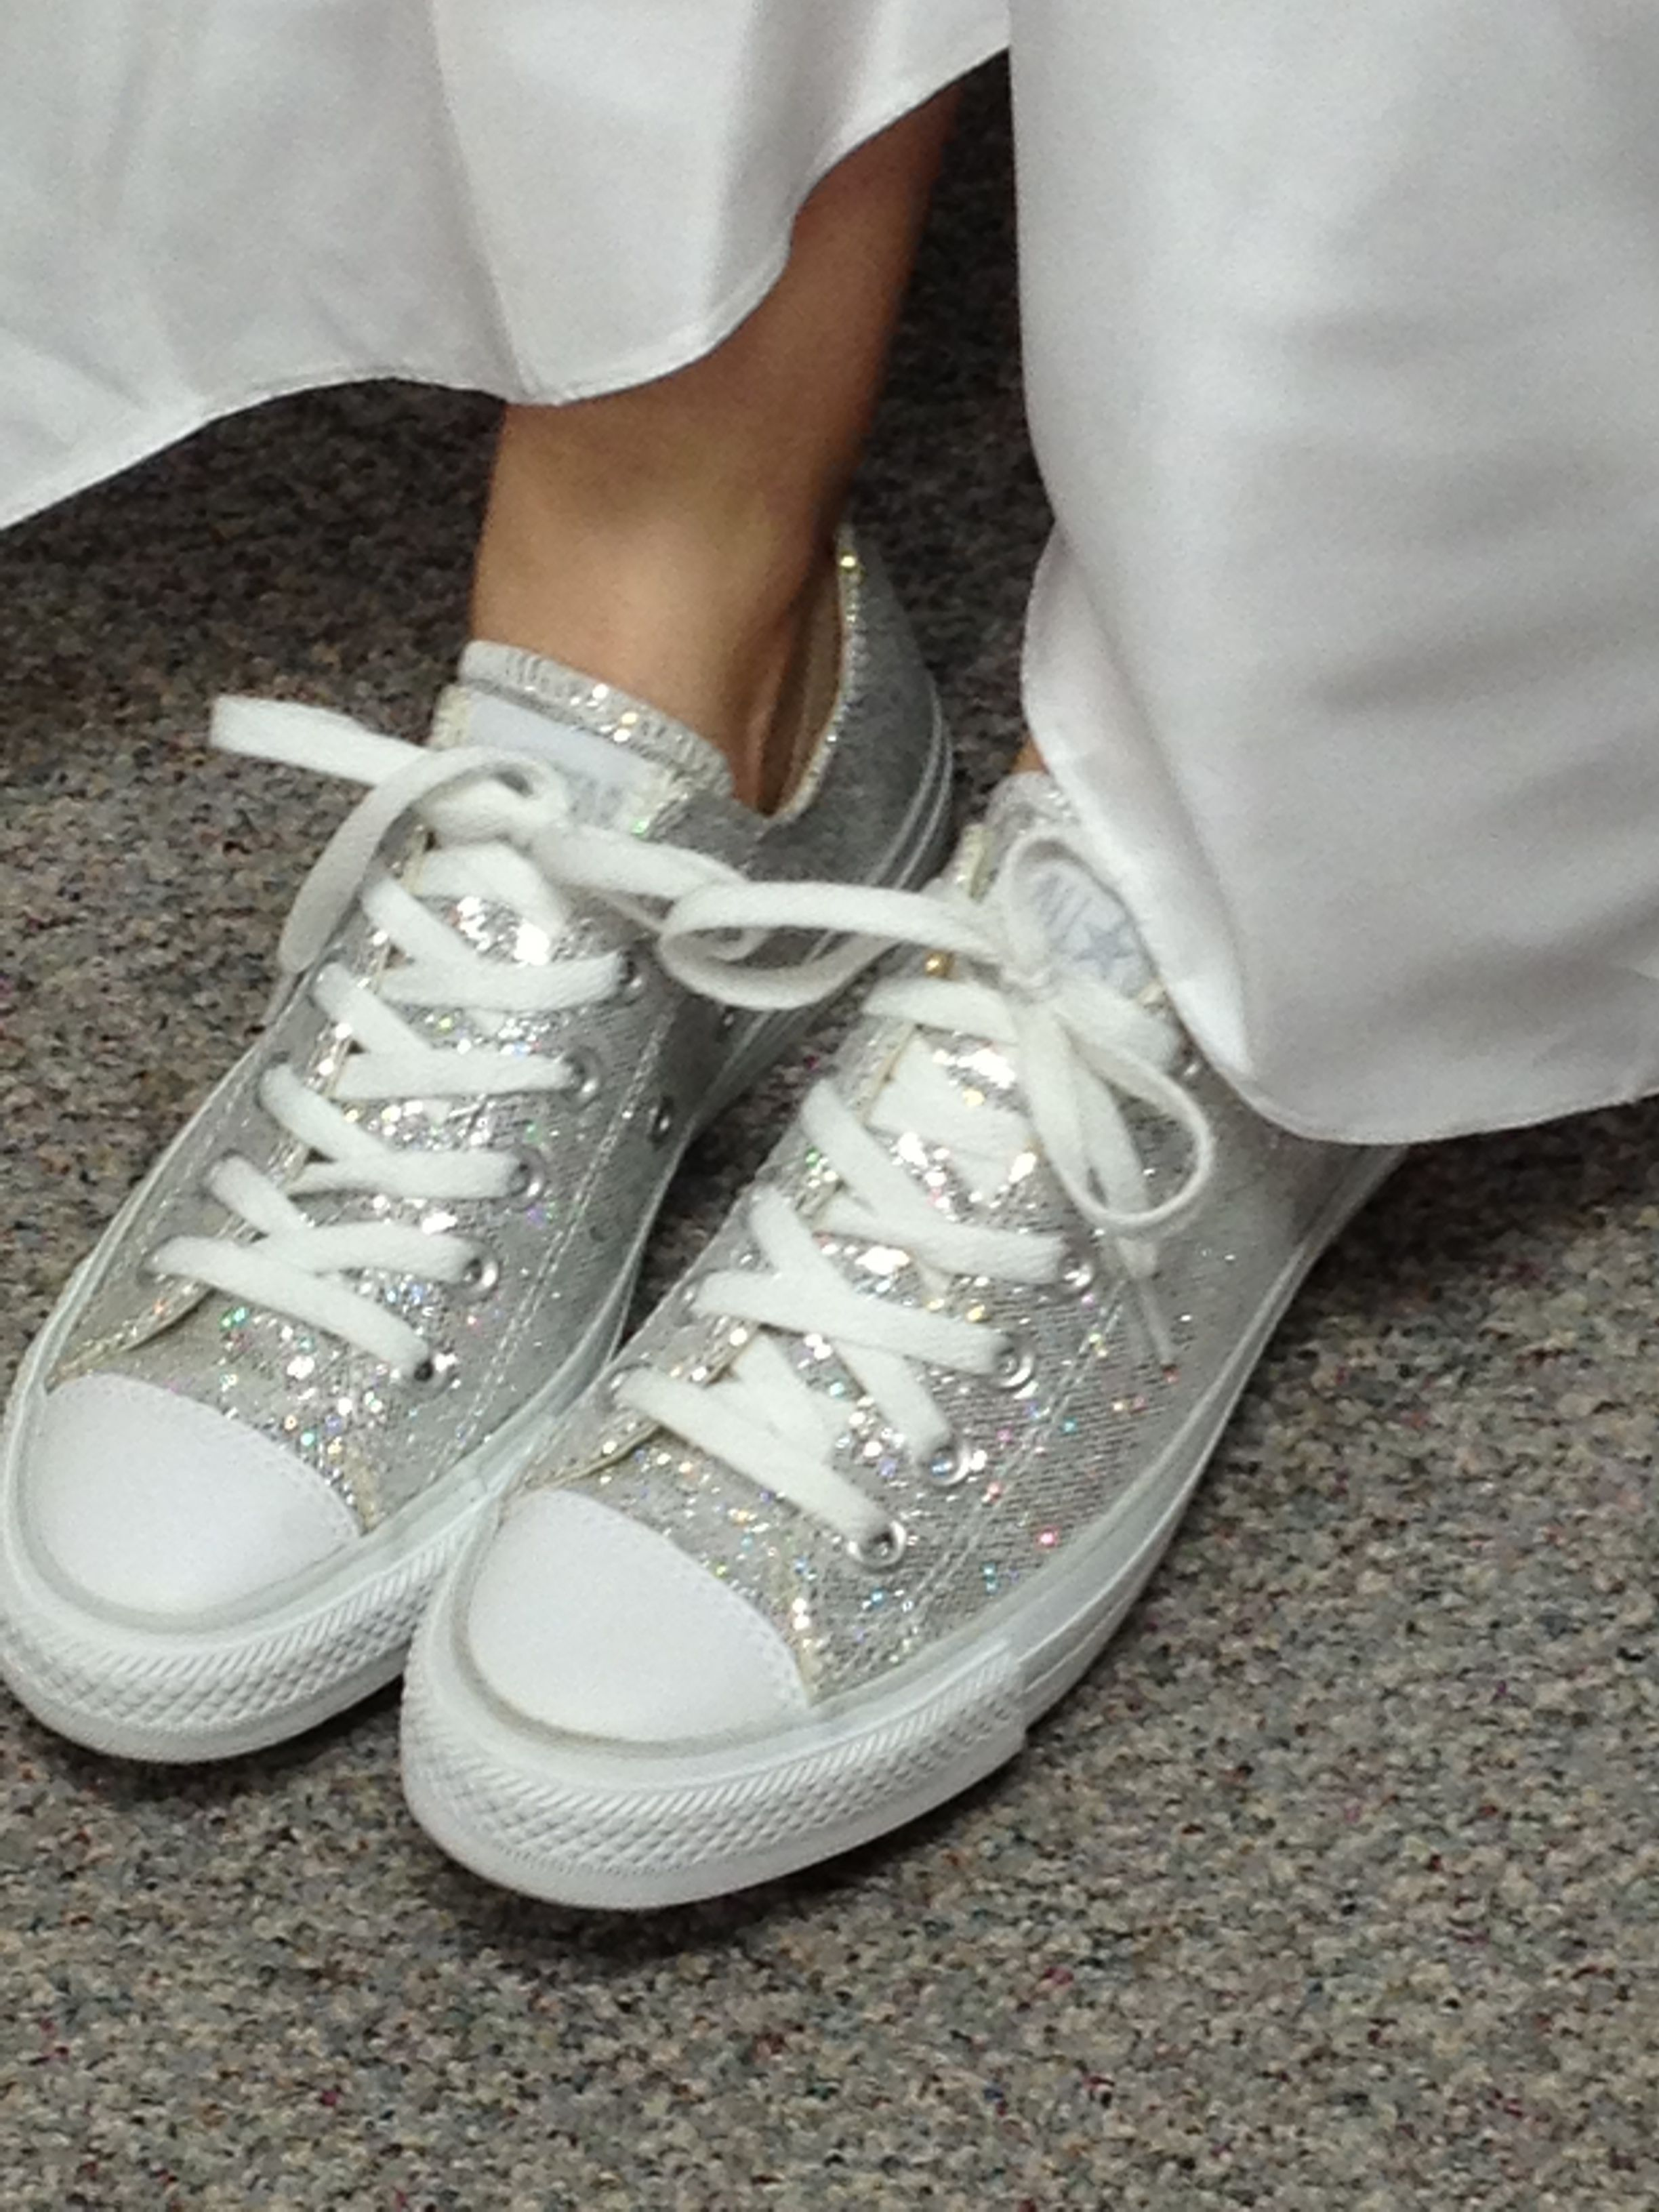 Sparkly converse with wedding dress I know you ve got your gray